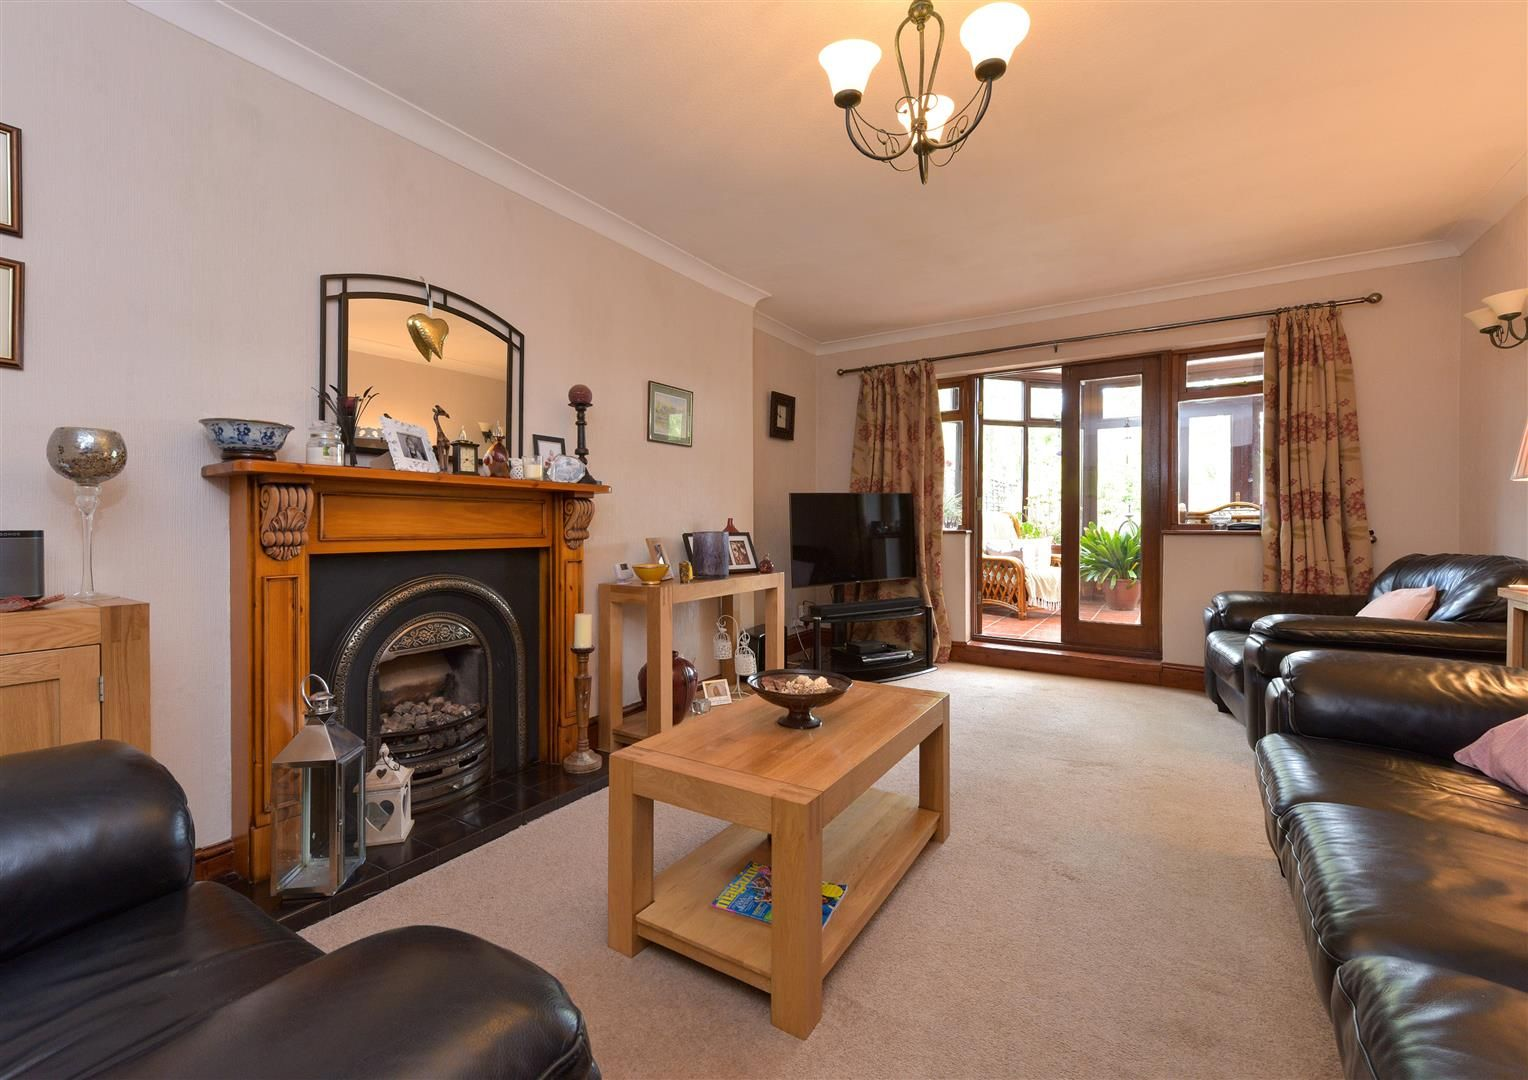 5 bed semi-detached for sale  - Property Image 6